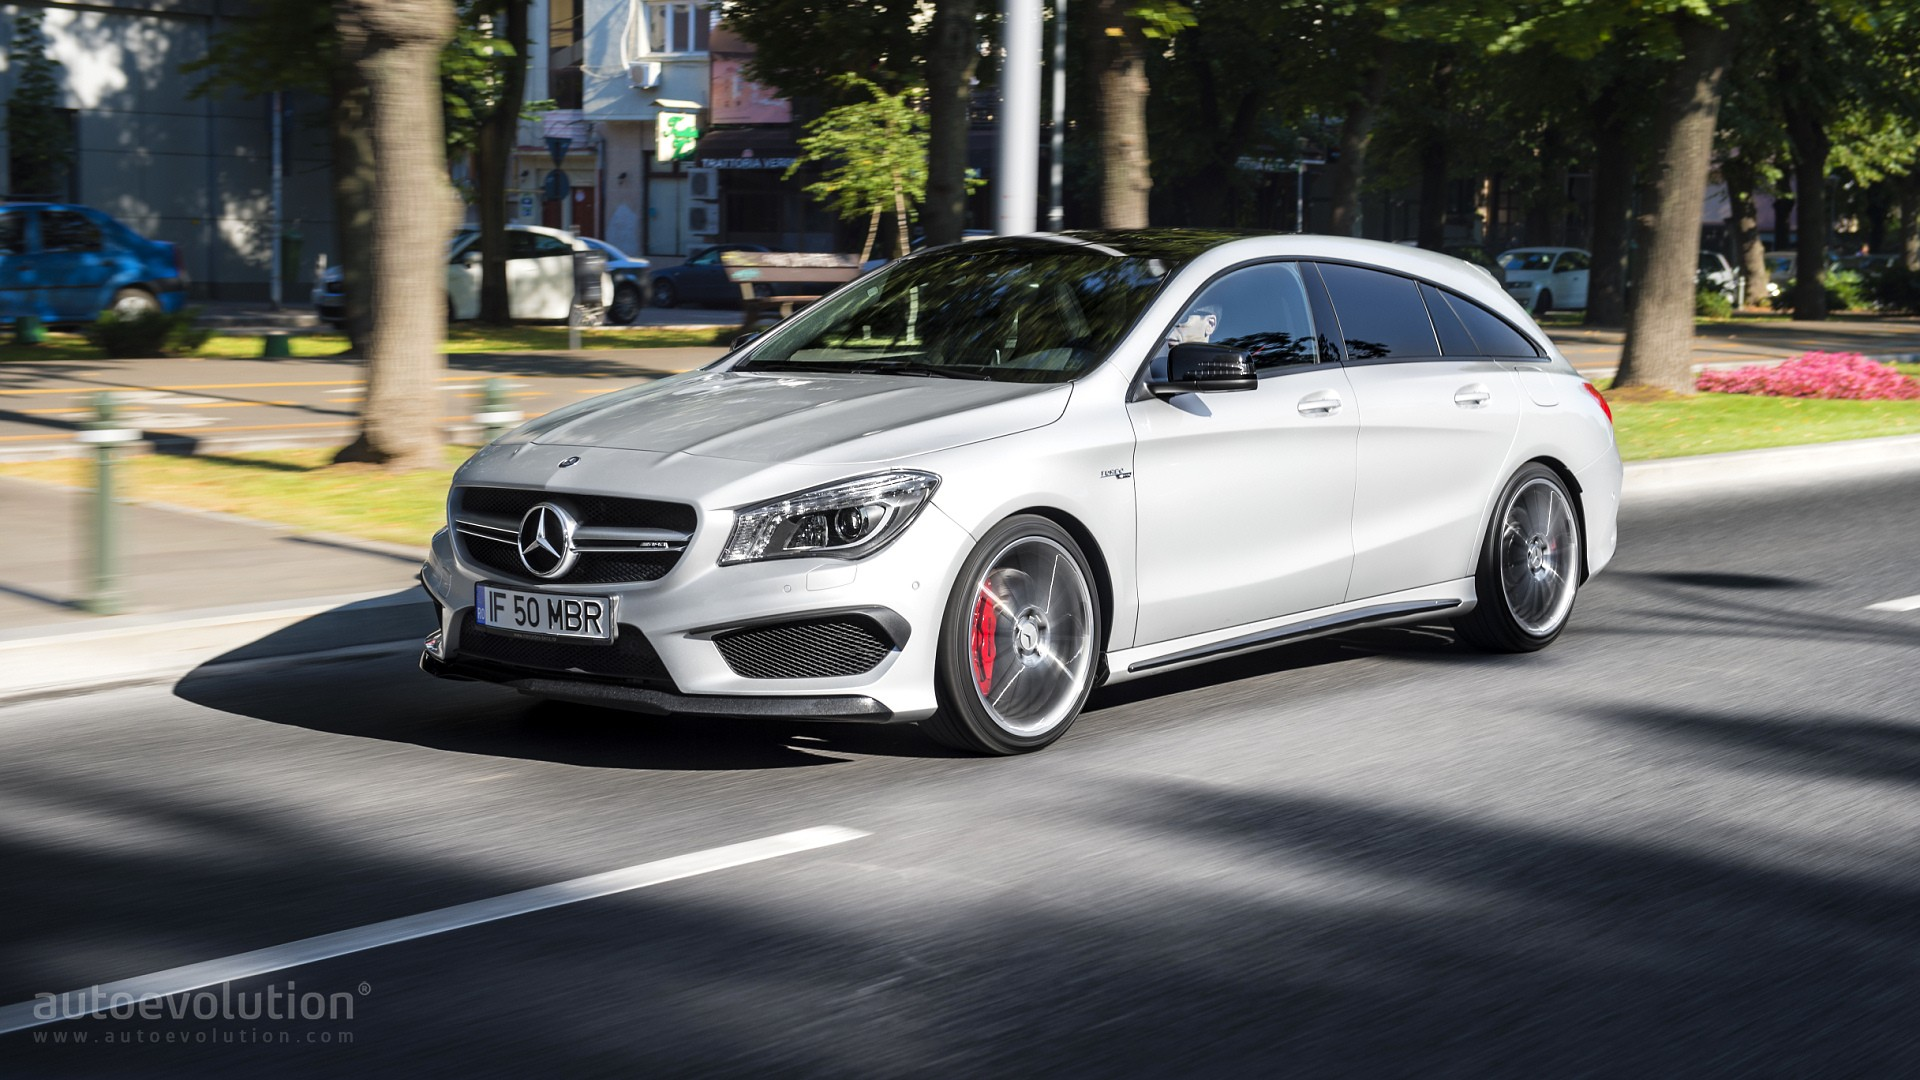 2016 mercedes benz cla45 amg shooting brake review autoevolution. Cars Review. Best American Auto & Cars Review